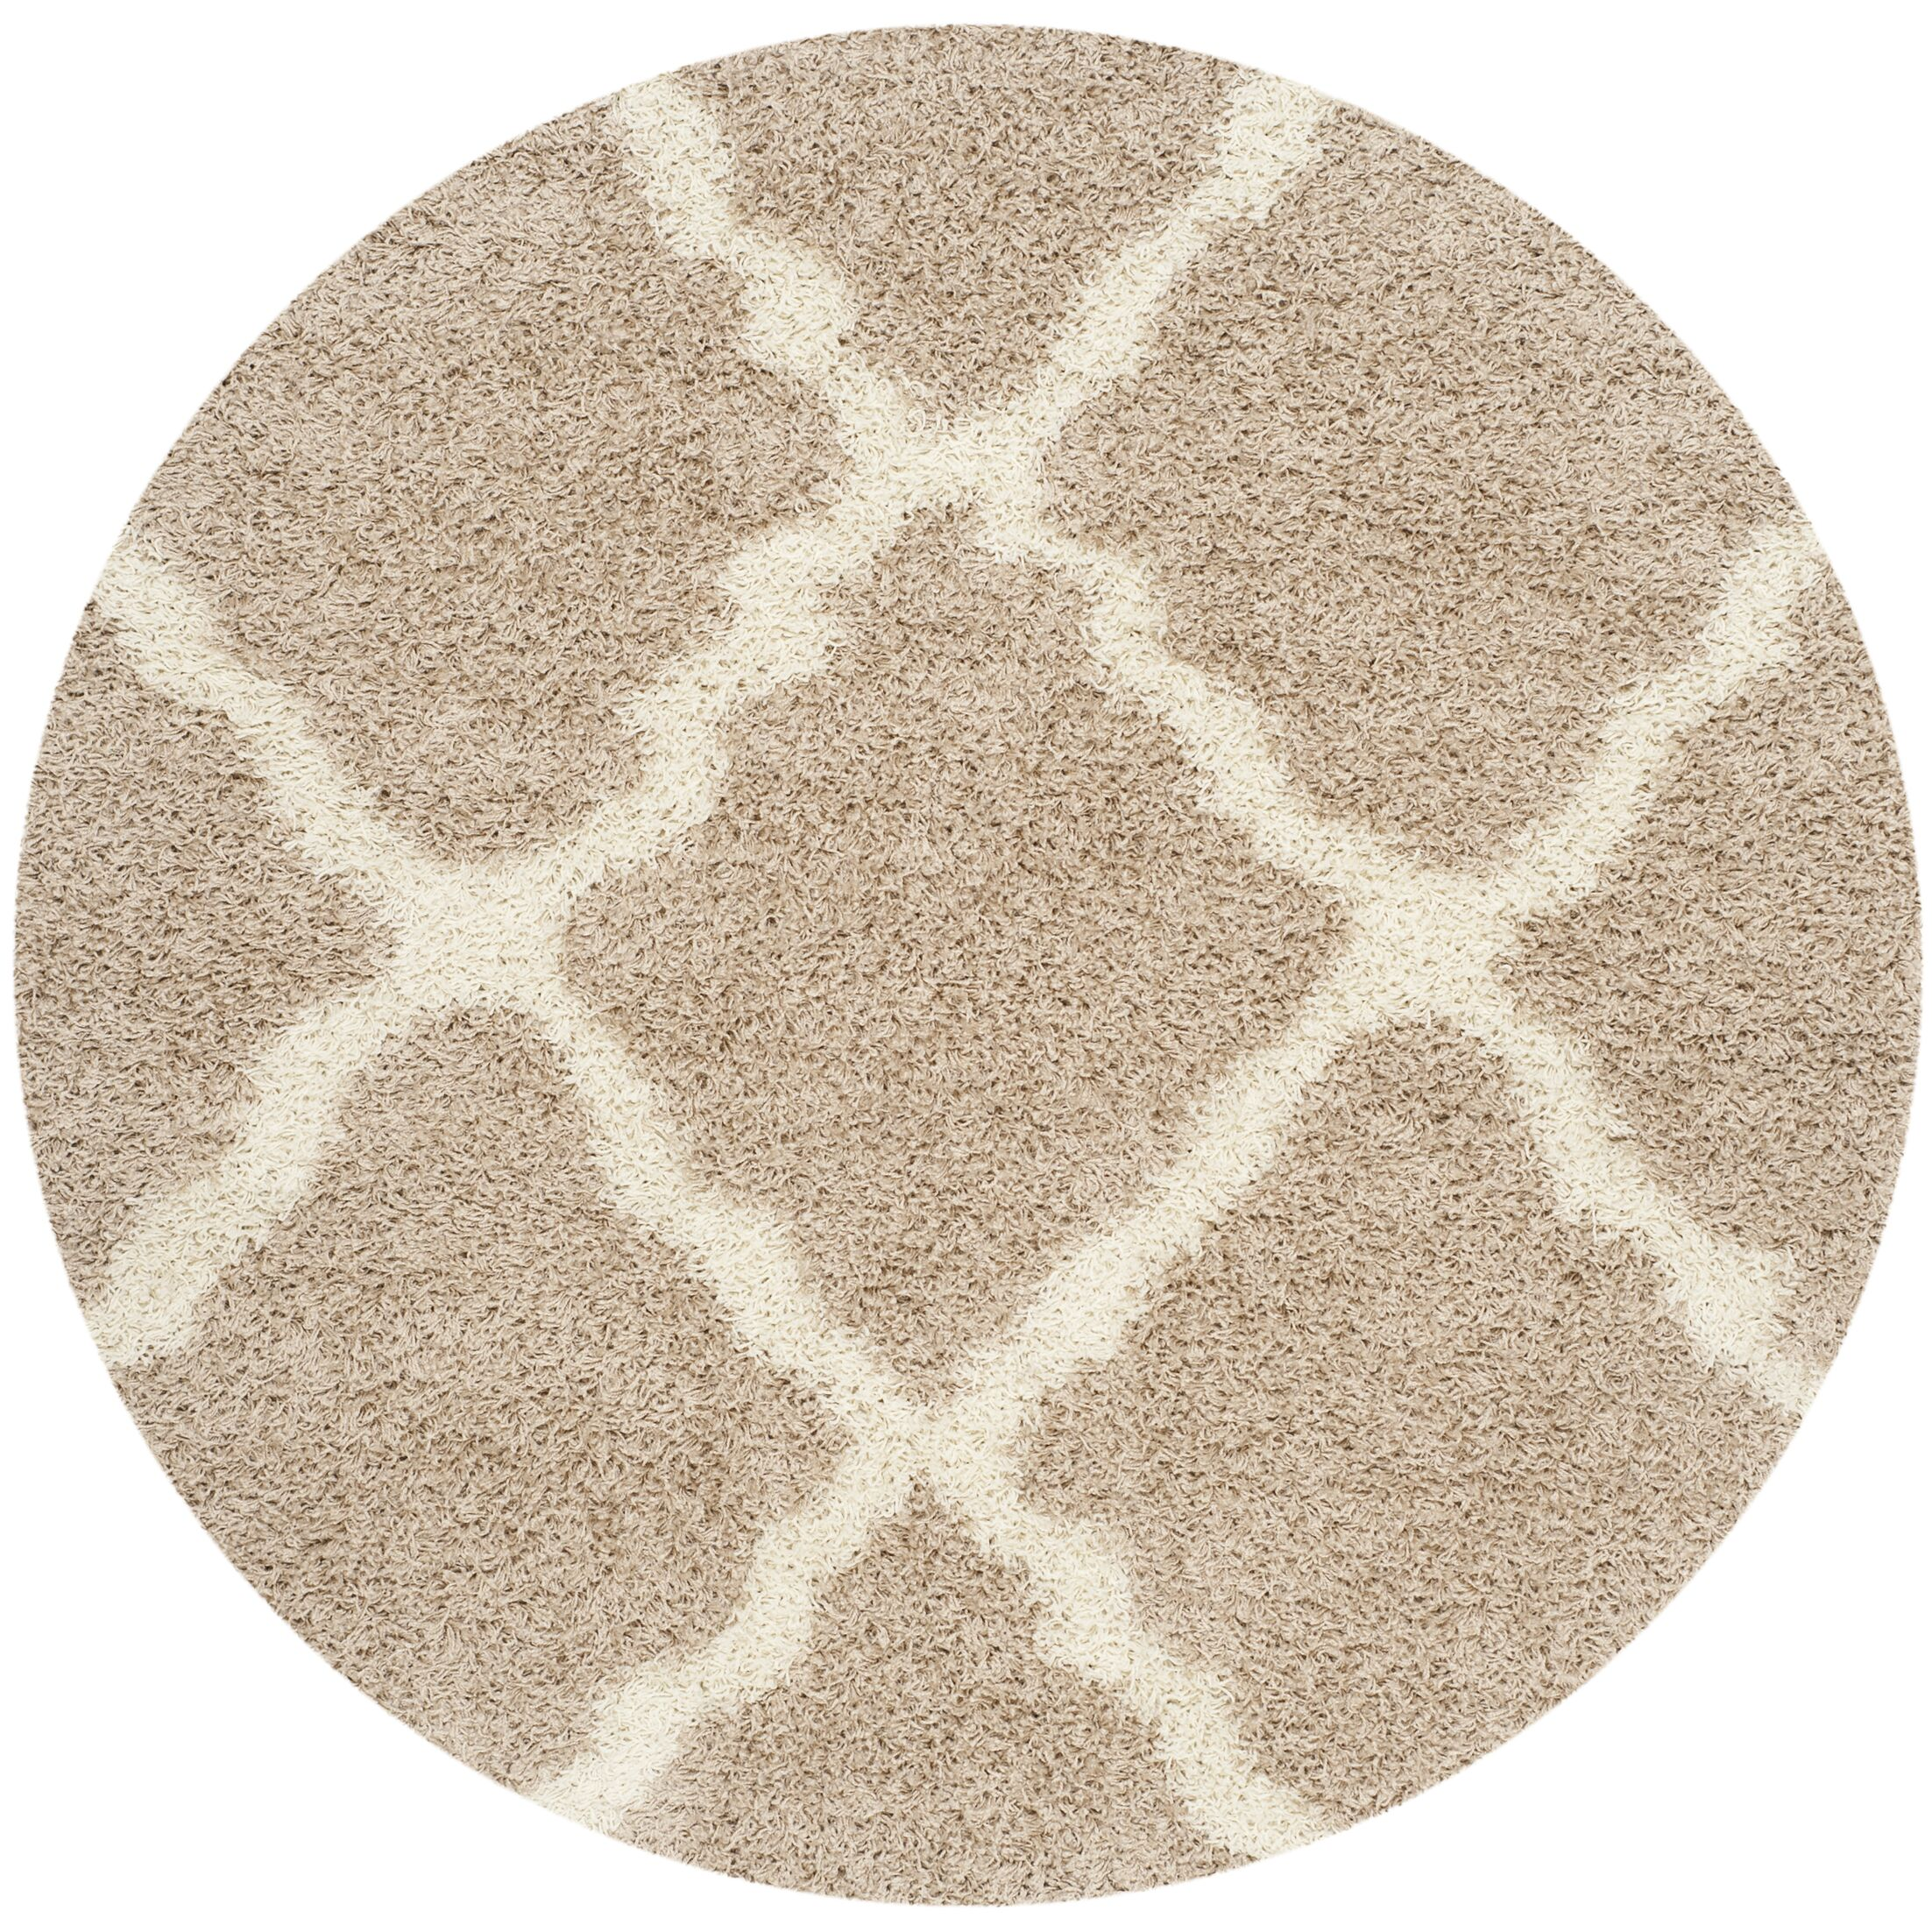 Fickes Beige/Ivory Area Rug Rug Size: Round 6'